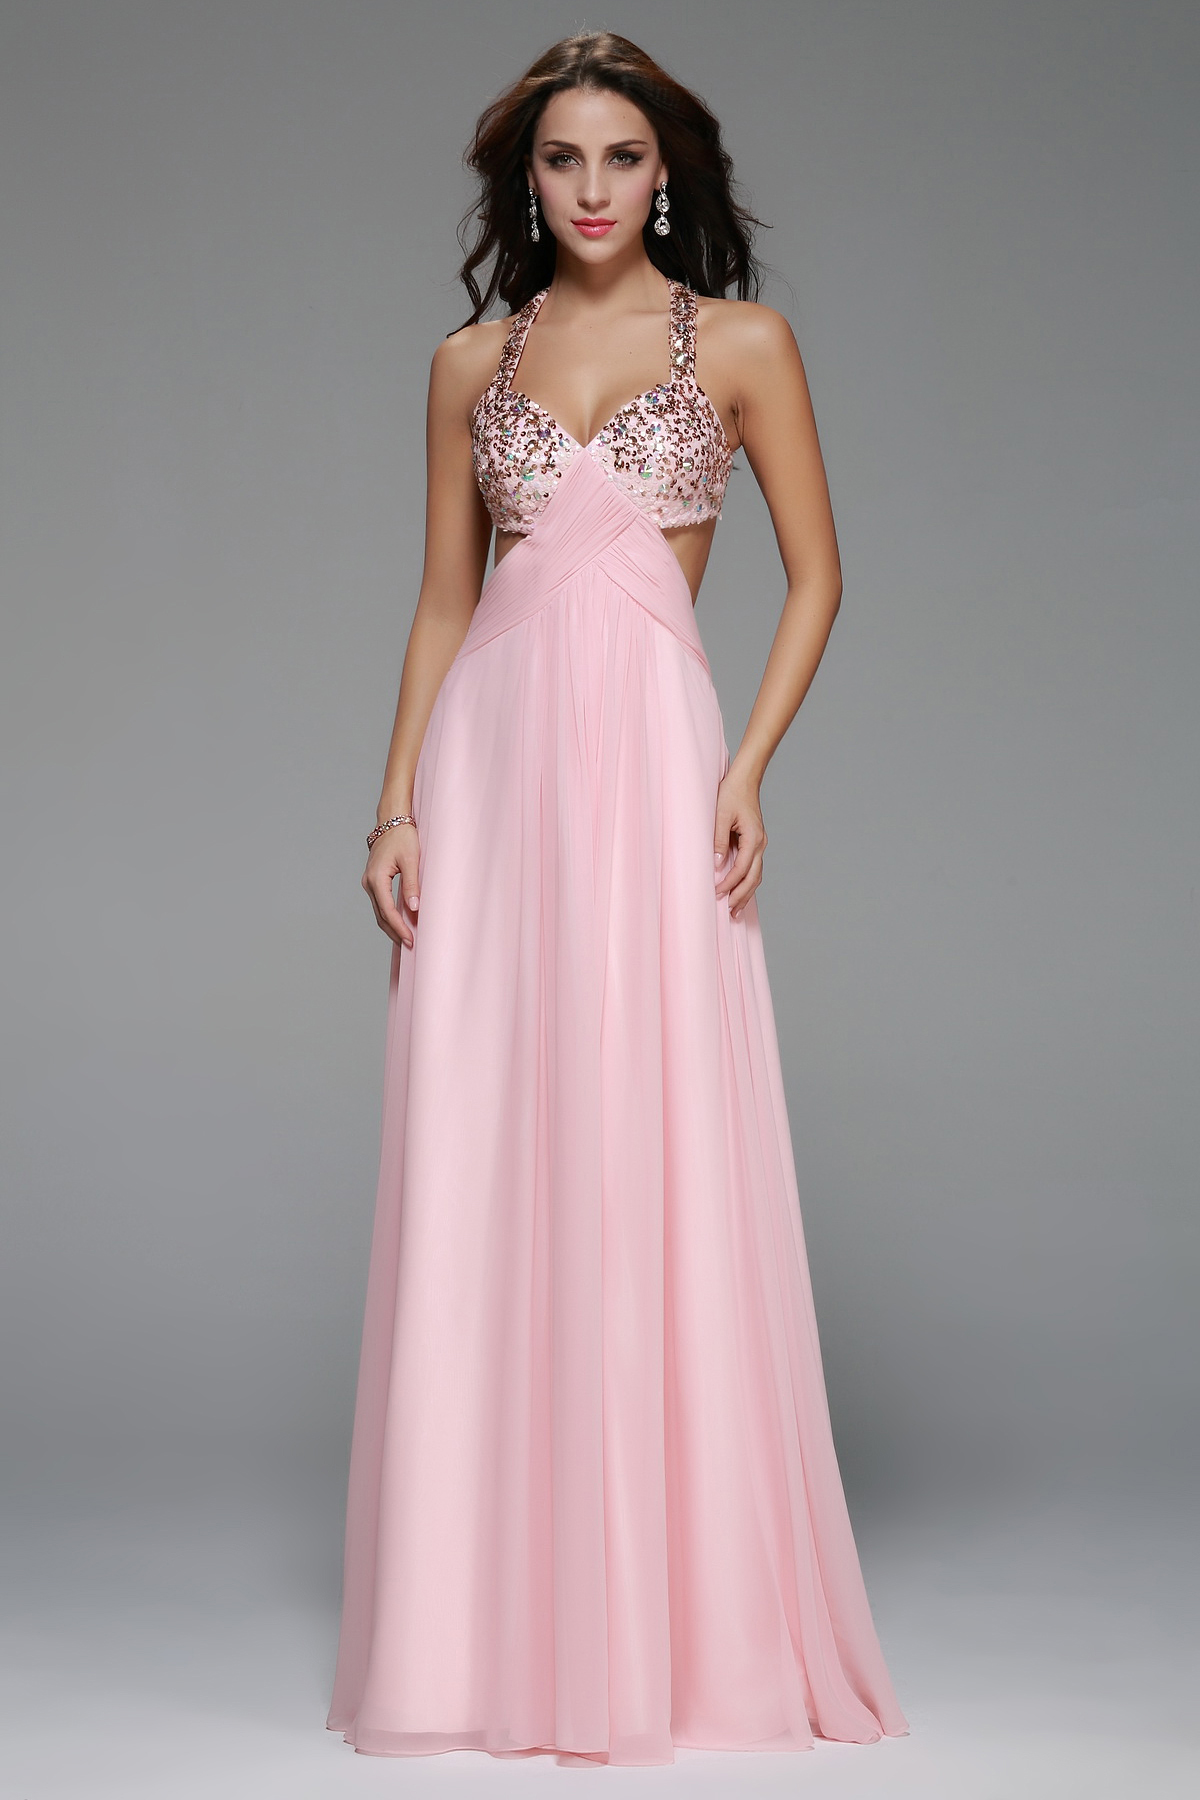 Shoulder Straps Beading A-line Long Pink Chiffon Prom Dress